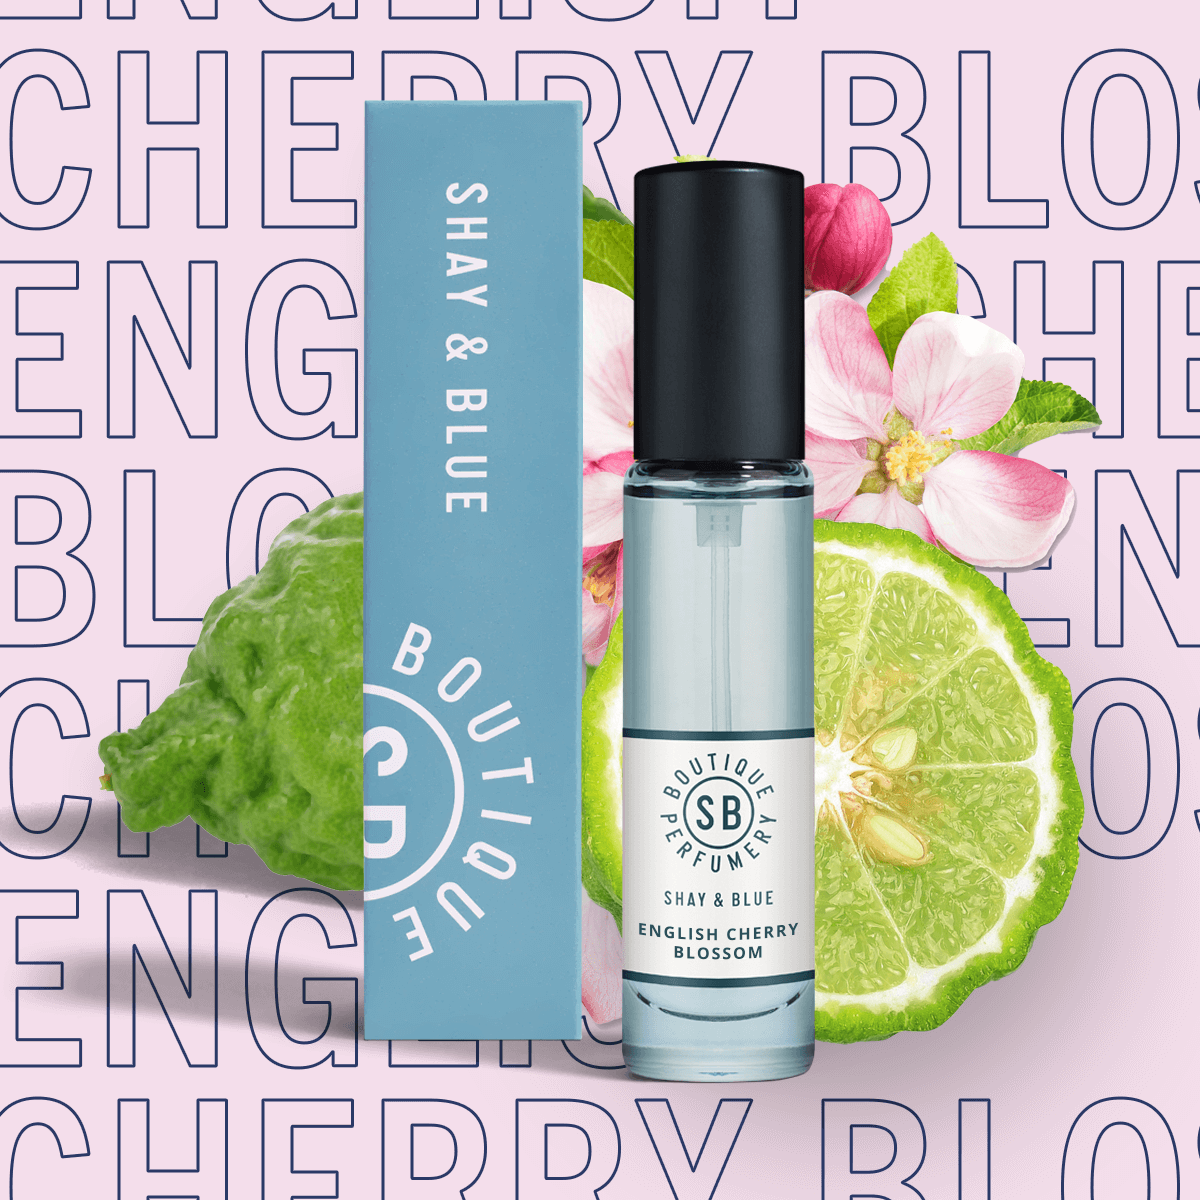 English Cherry Blossom Fragrance 10ml | Airy blossom with black cherries, fig and bergamot for a sparkling citrus lift. | Clean All Gender Fragrance | Shay & Blue